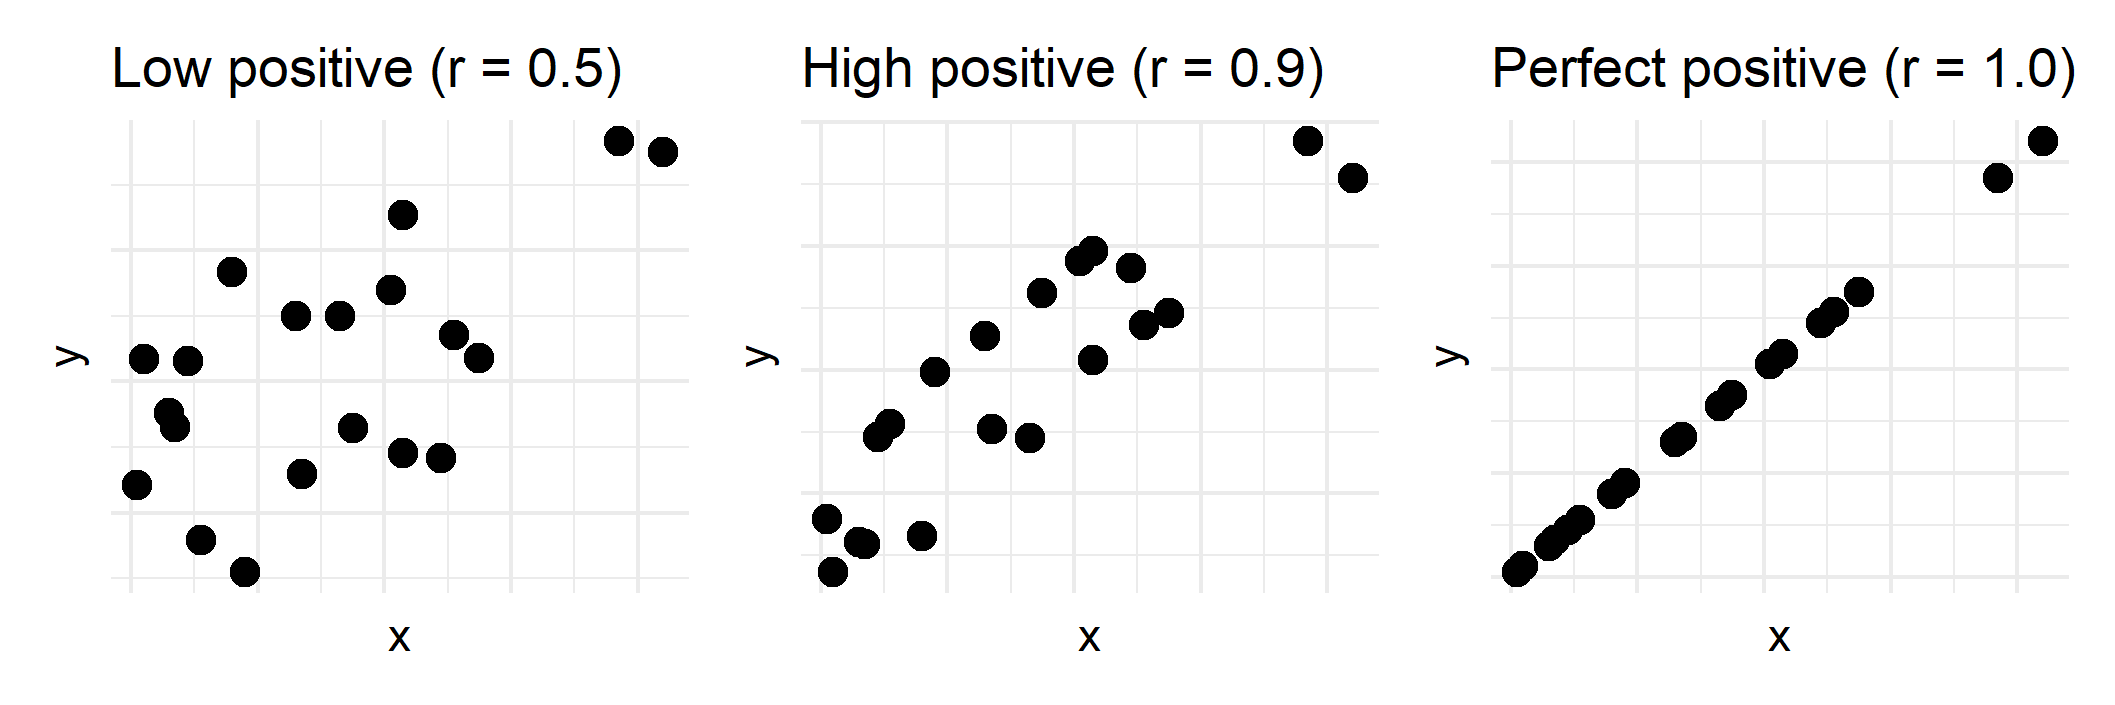 Examples of low, high, and perfect positive correlations between x and y